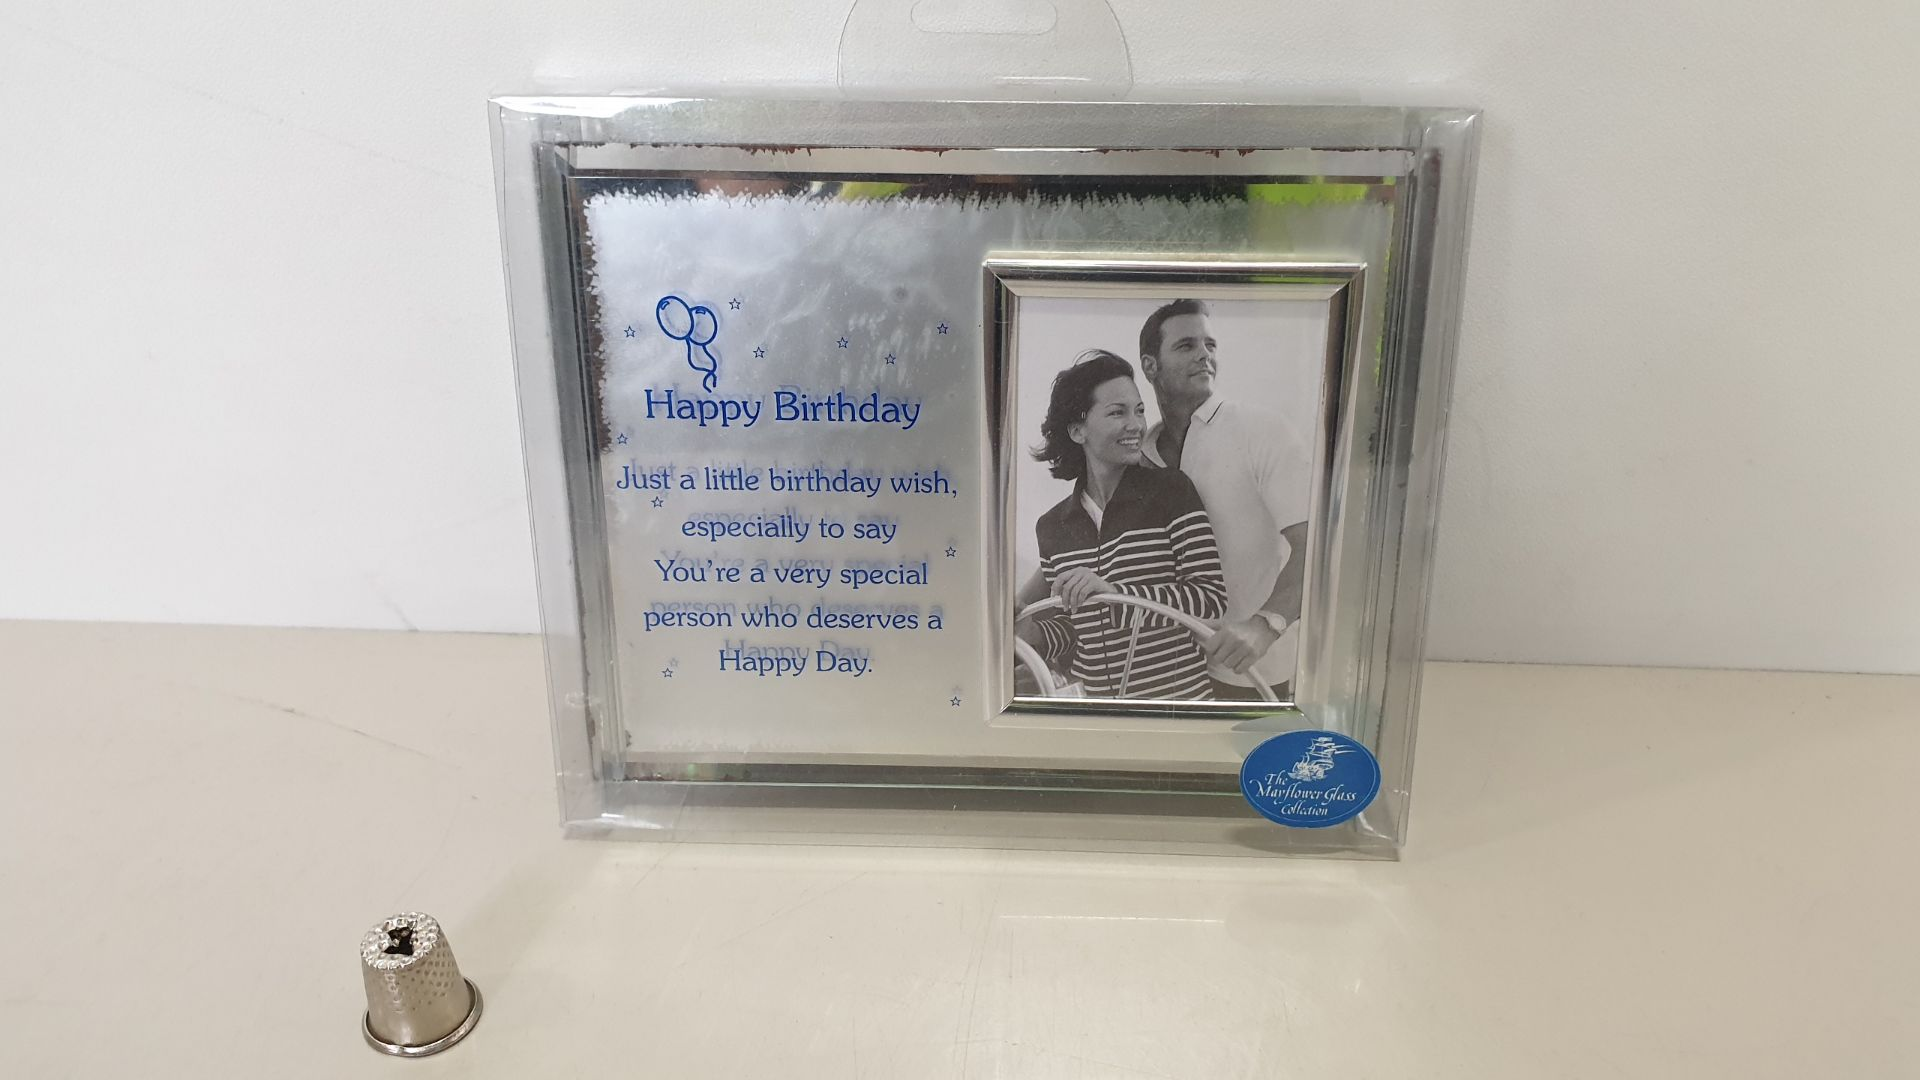 Lot 645 - 144 X BRAND NEW THE MAYFLOWER GLASS COLLECTION HAPPY BIRTHDAY MESSAGE FRAME - IN 3 BOXES